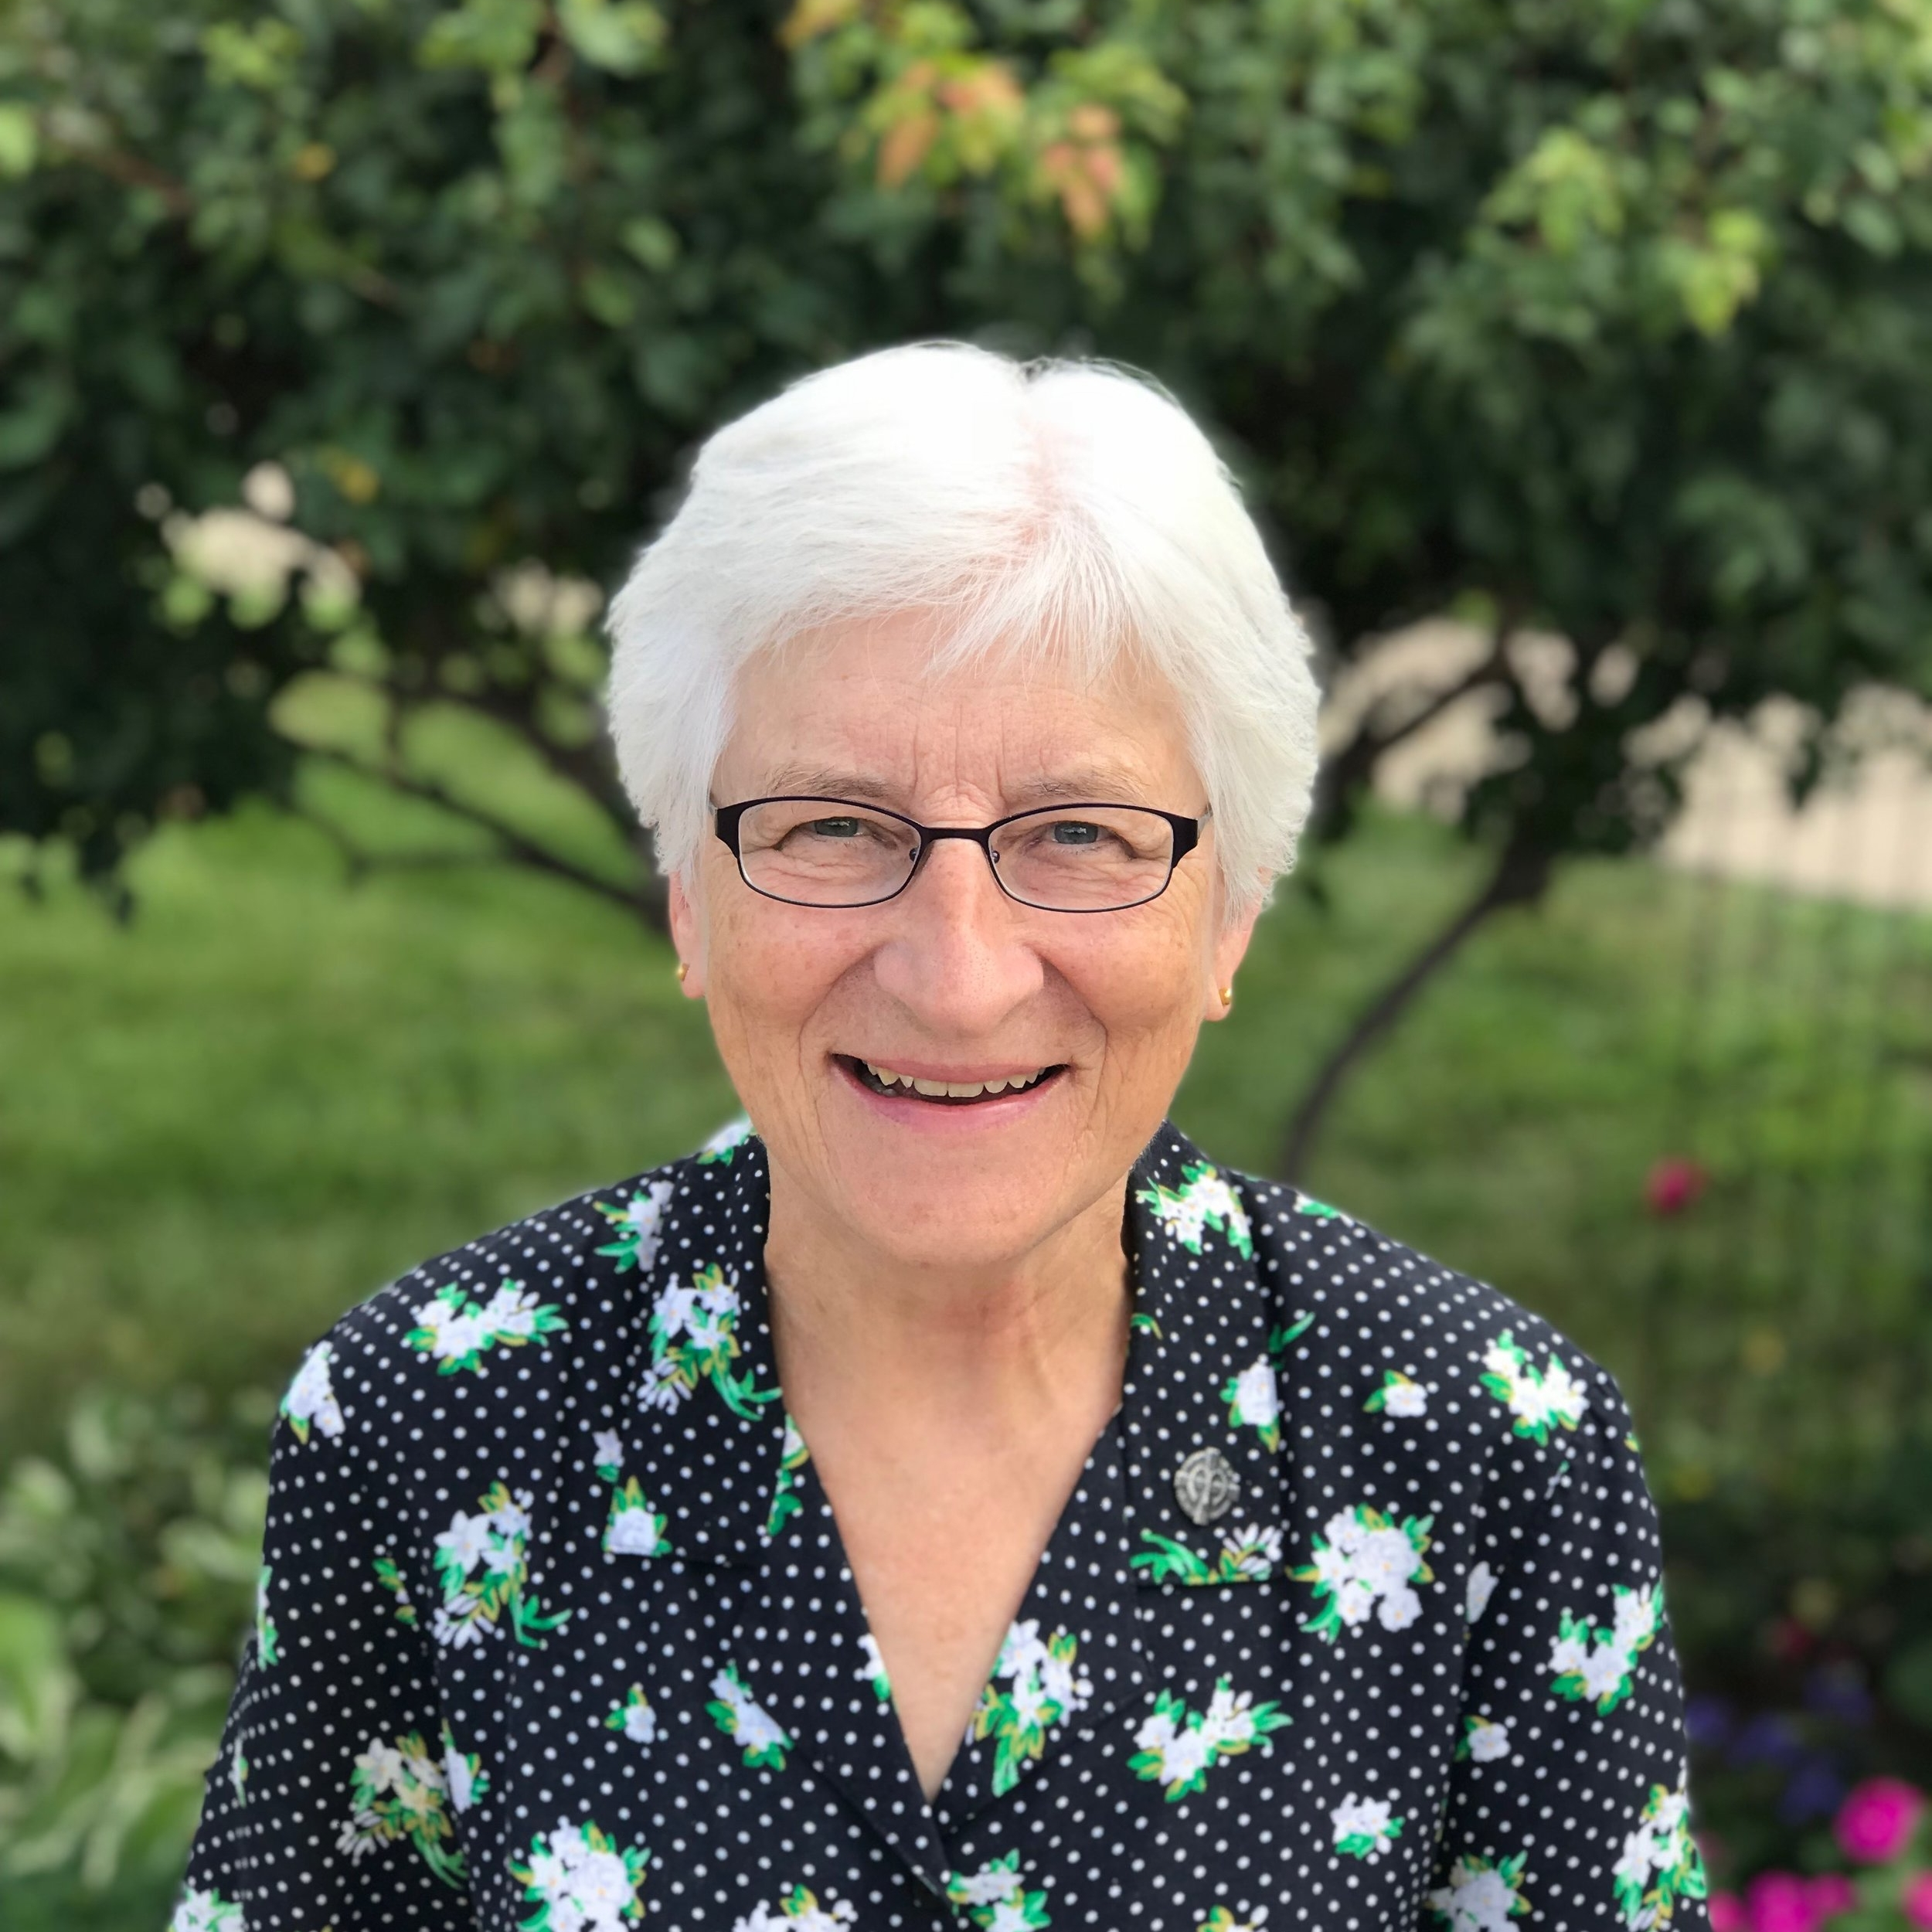 Sr. Audrey Lindenfelser, SSND  -ParaProfessional  alindenfelser@stjeromeschool.org  I am a School Sister of Notre Dame. My religious community has served in schools and various ministries on the East Side of St. Paul for over 130 years. I have over 40 years of experience in teaching and administration, with a degree in elementary education, a masters in nonpublic school administration from St. Thomas University and reading licensure from Hamline University. I'm grateful for the opportunity to use my skills and experience to support students at St. Jerome, helping them reach more of their potential as individuals created in God's image.